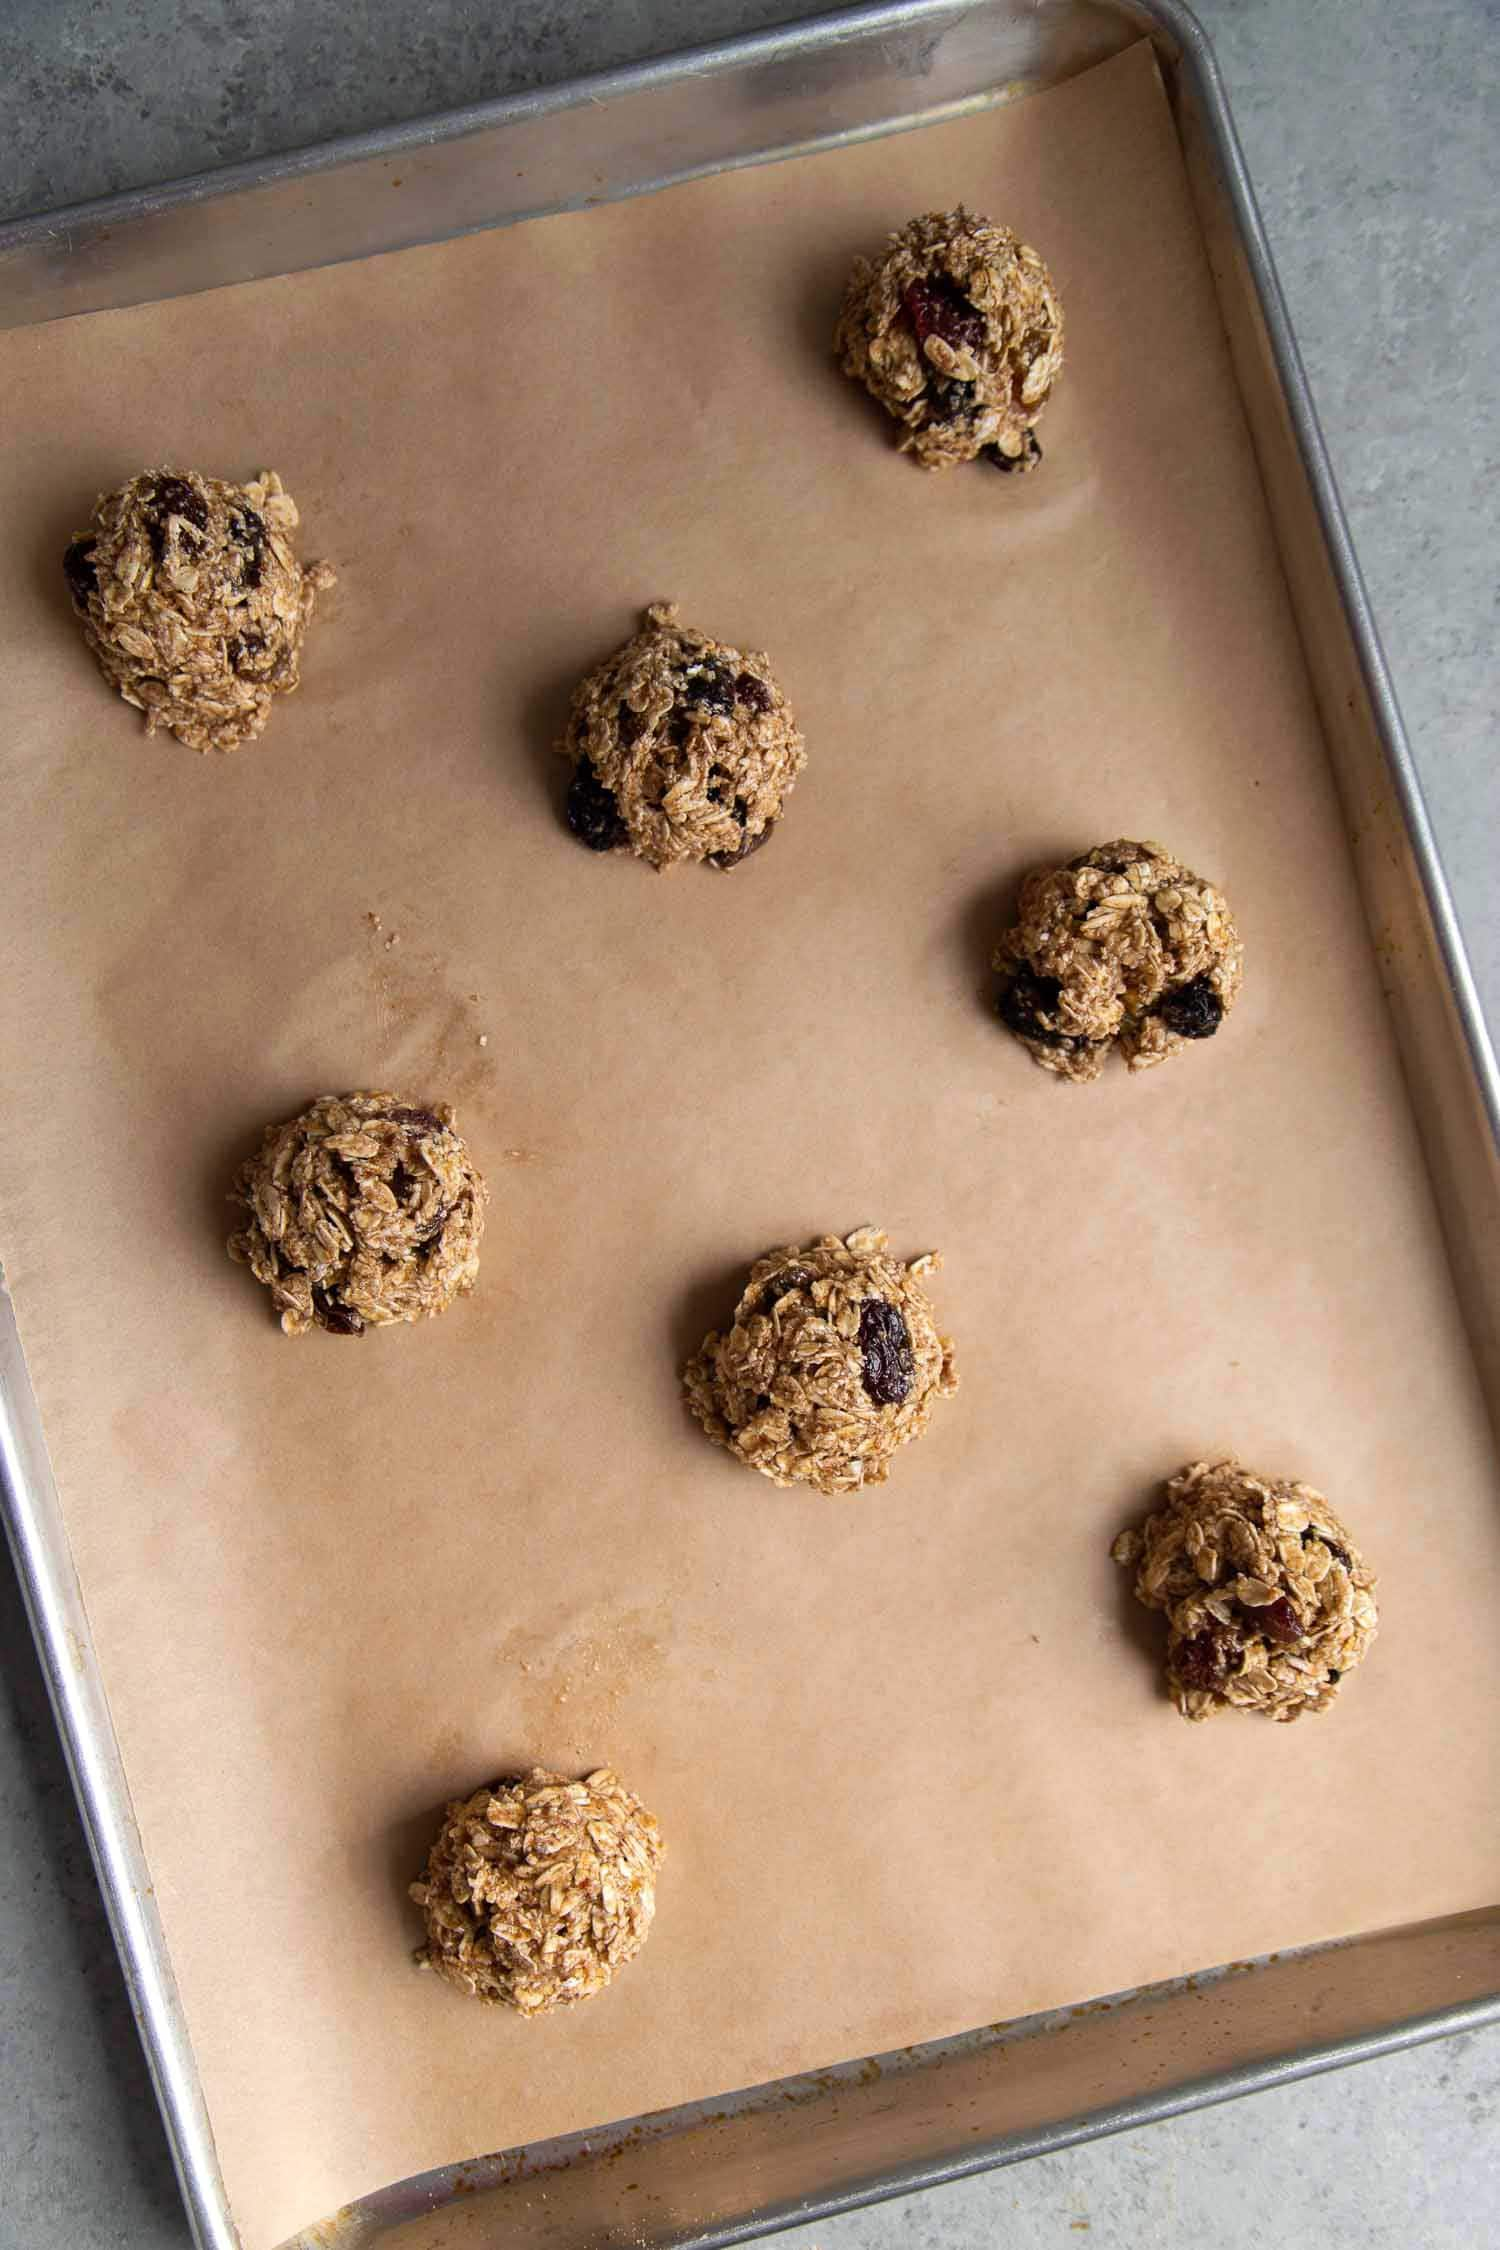 Vegan oatmeal raisin cookie dough made with gluten free oat flour, flaxseed egg, and coconut oil